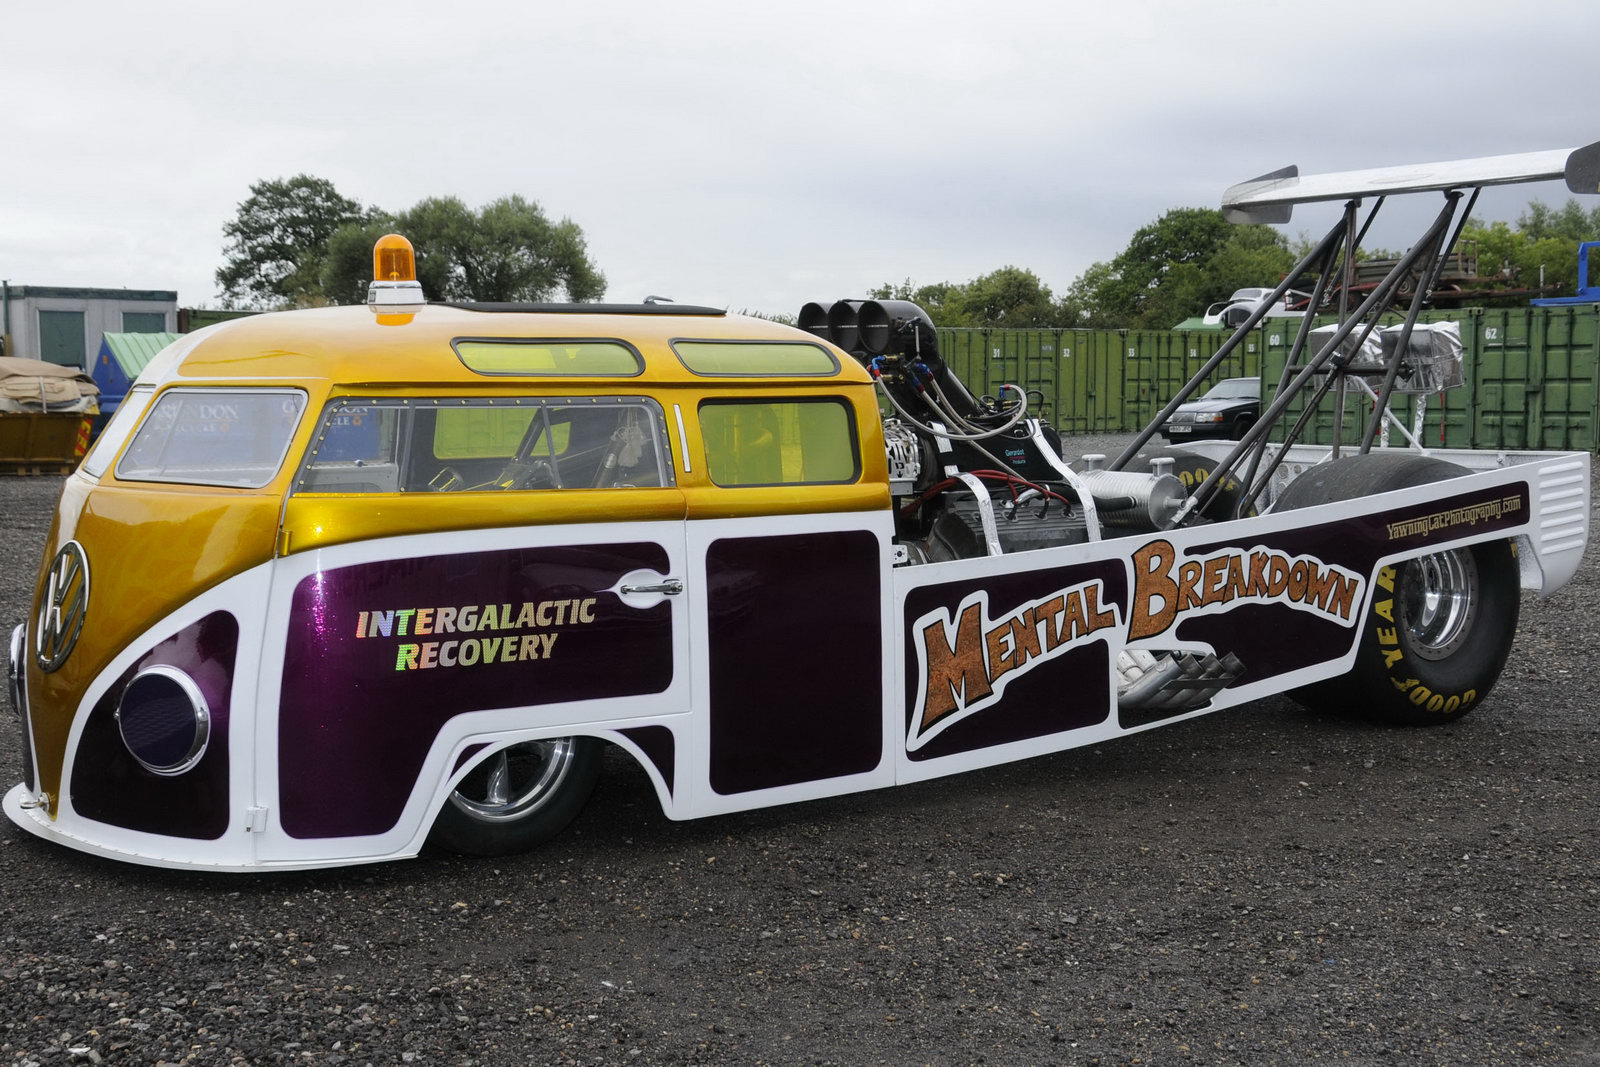 Volkswagen Bus Becomes Mental Breakdown Dragster